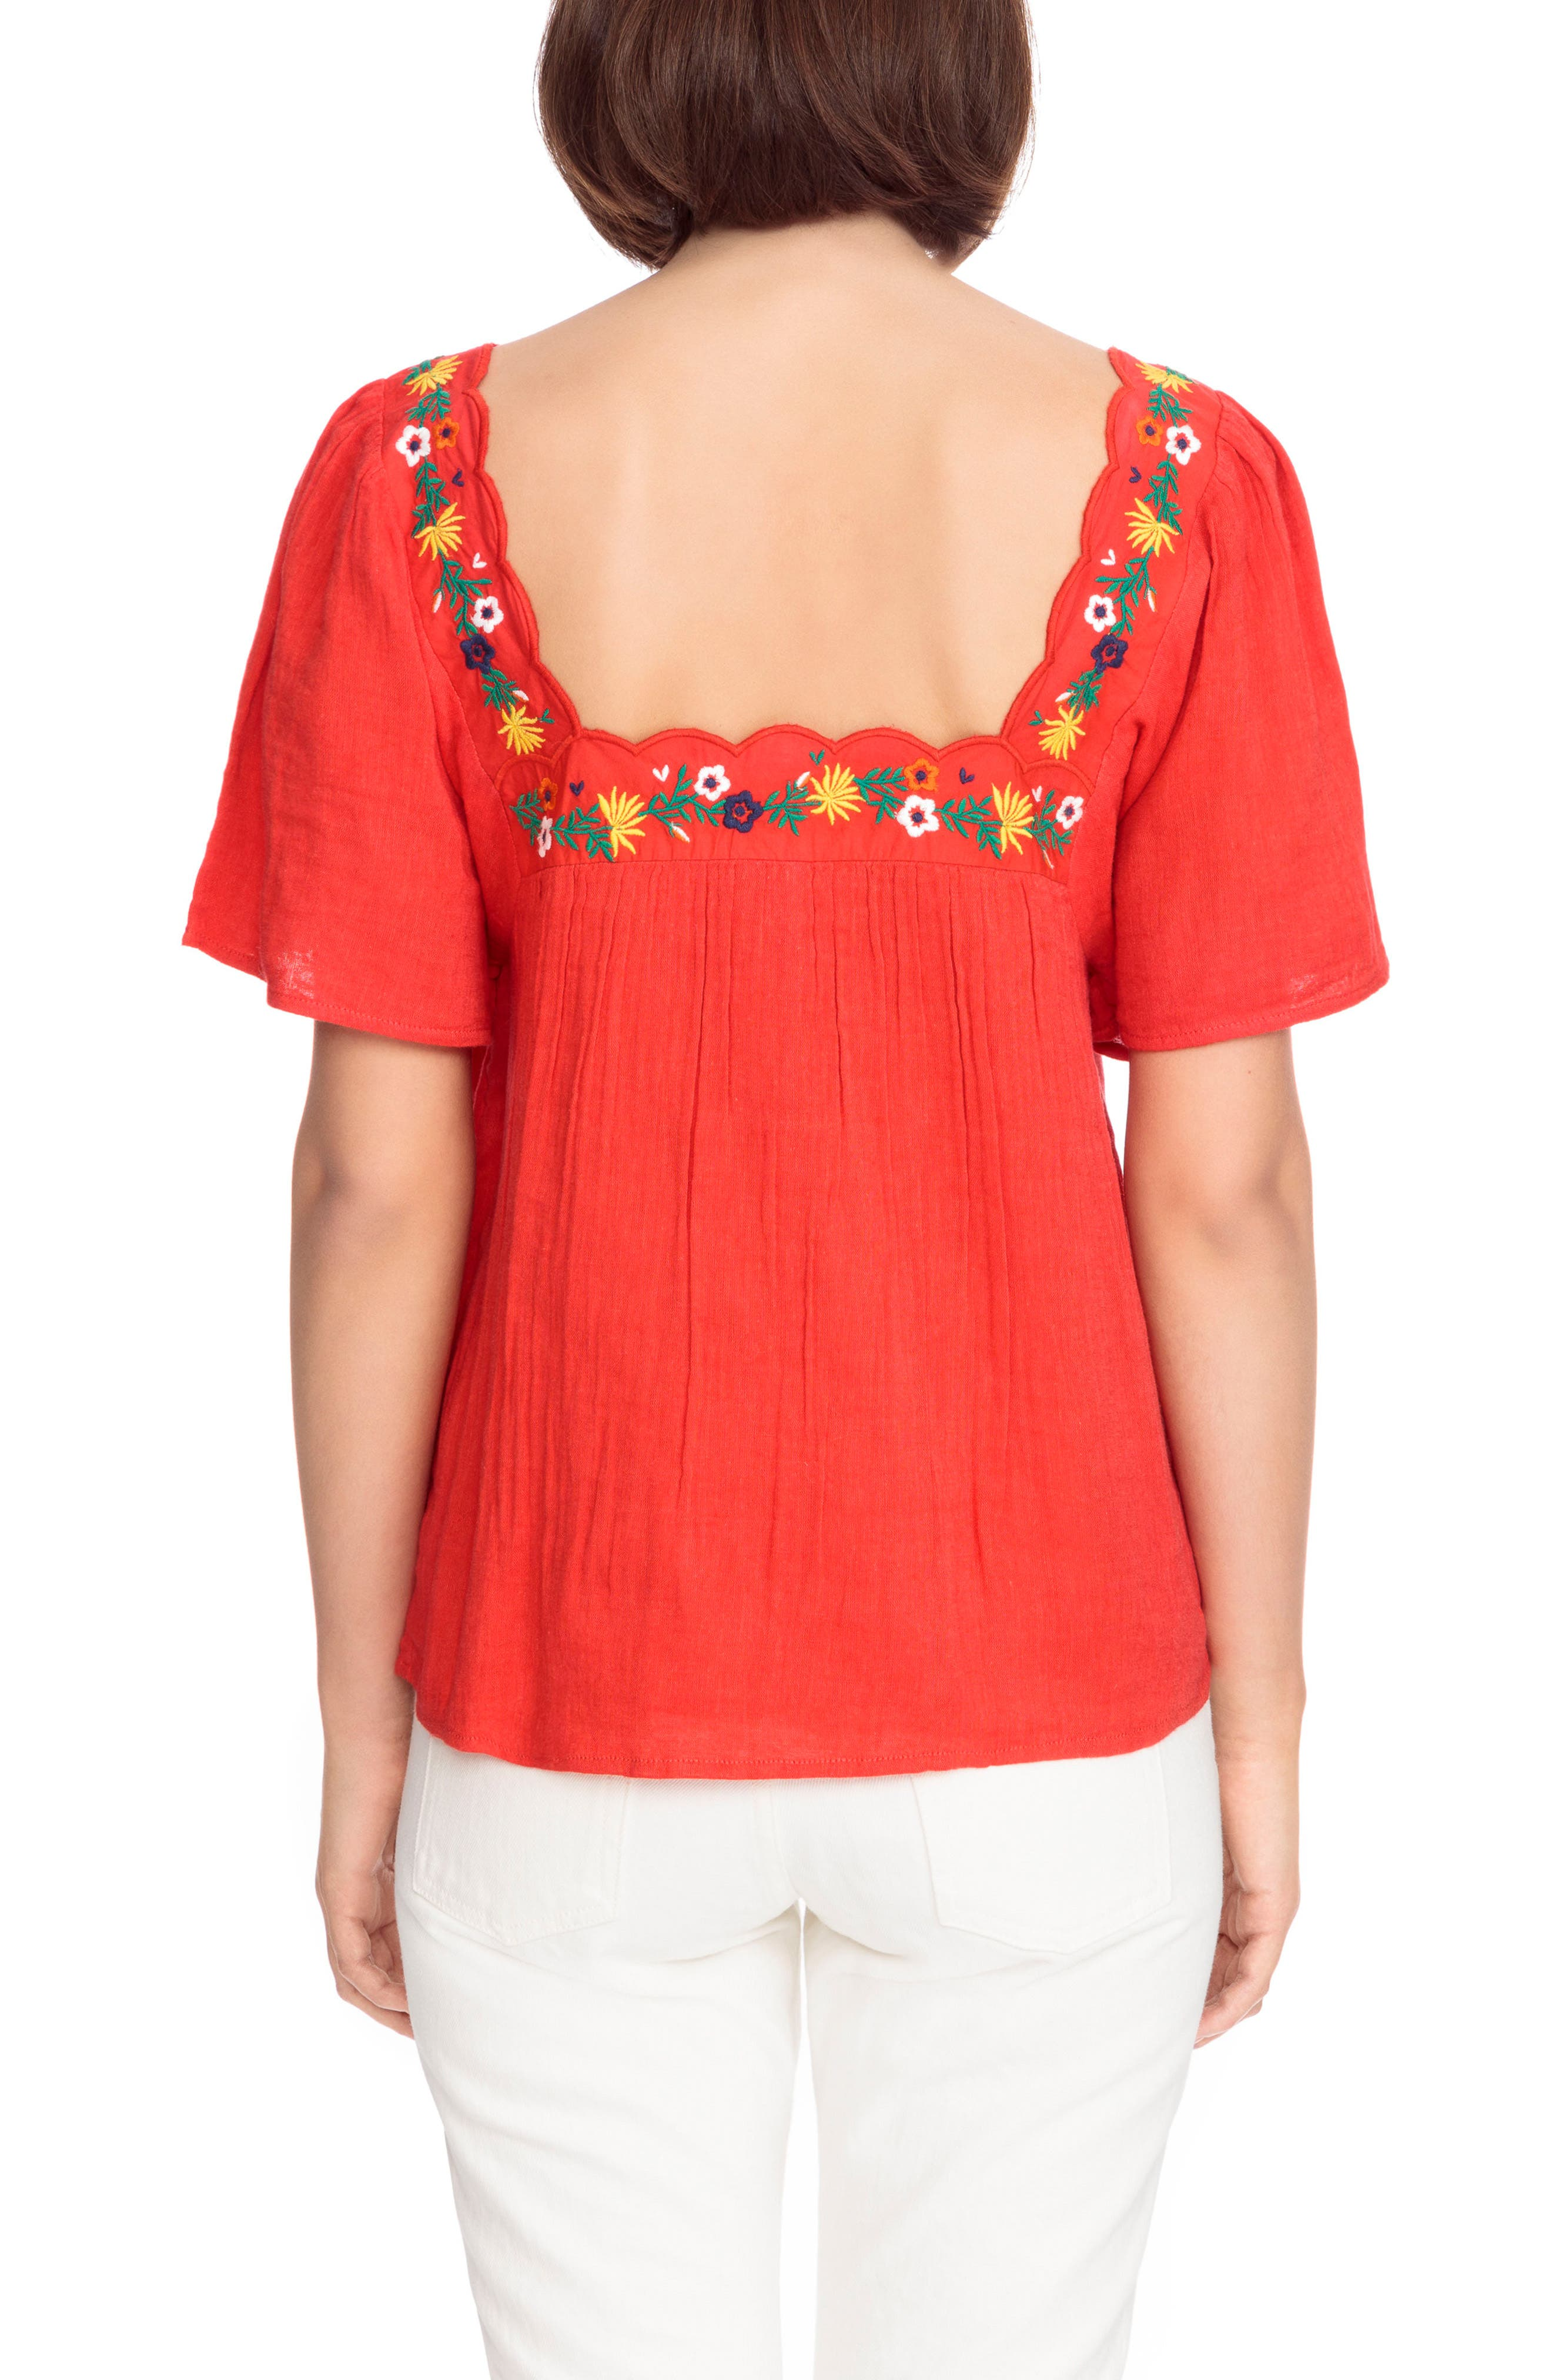 Bea Scalloped Top,                             Alternate thumbnail 3, color,                             Coral Red